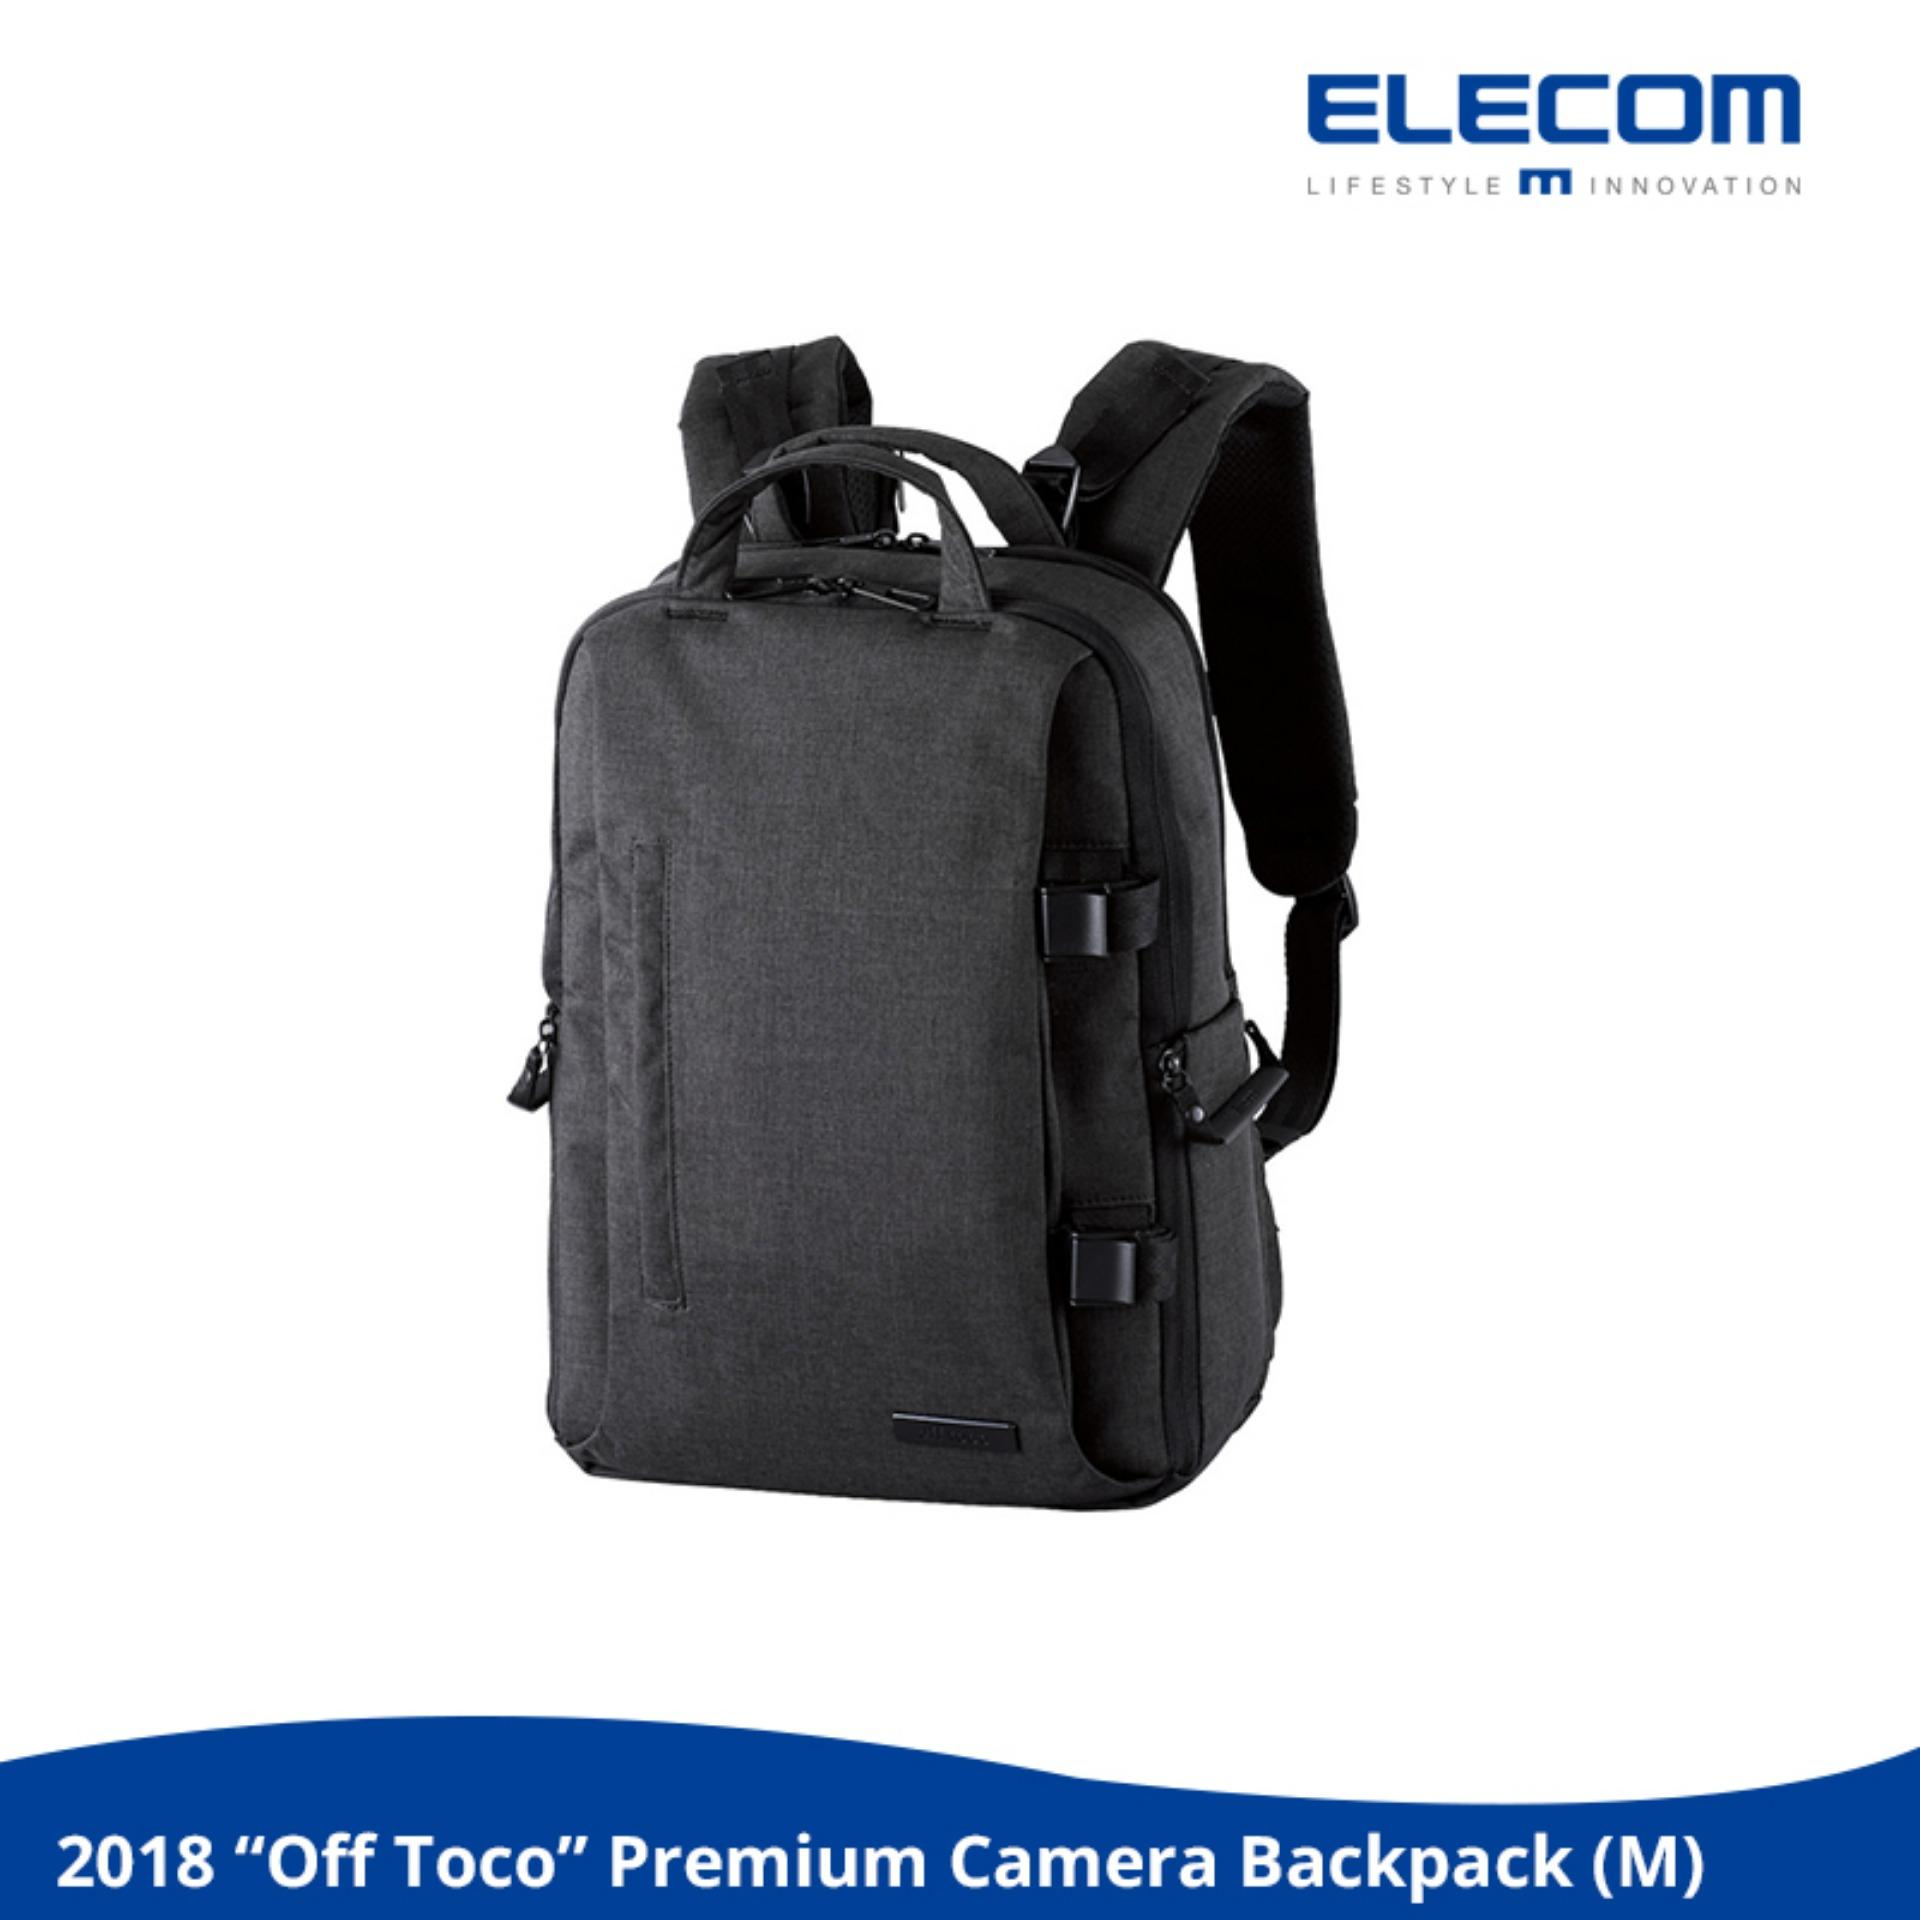 Best Offer Elecom Off Toco Premium Camera Backpack M Size 2018 New Model Nikon Canon Dslr Laptop 14Inch